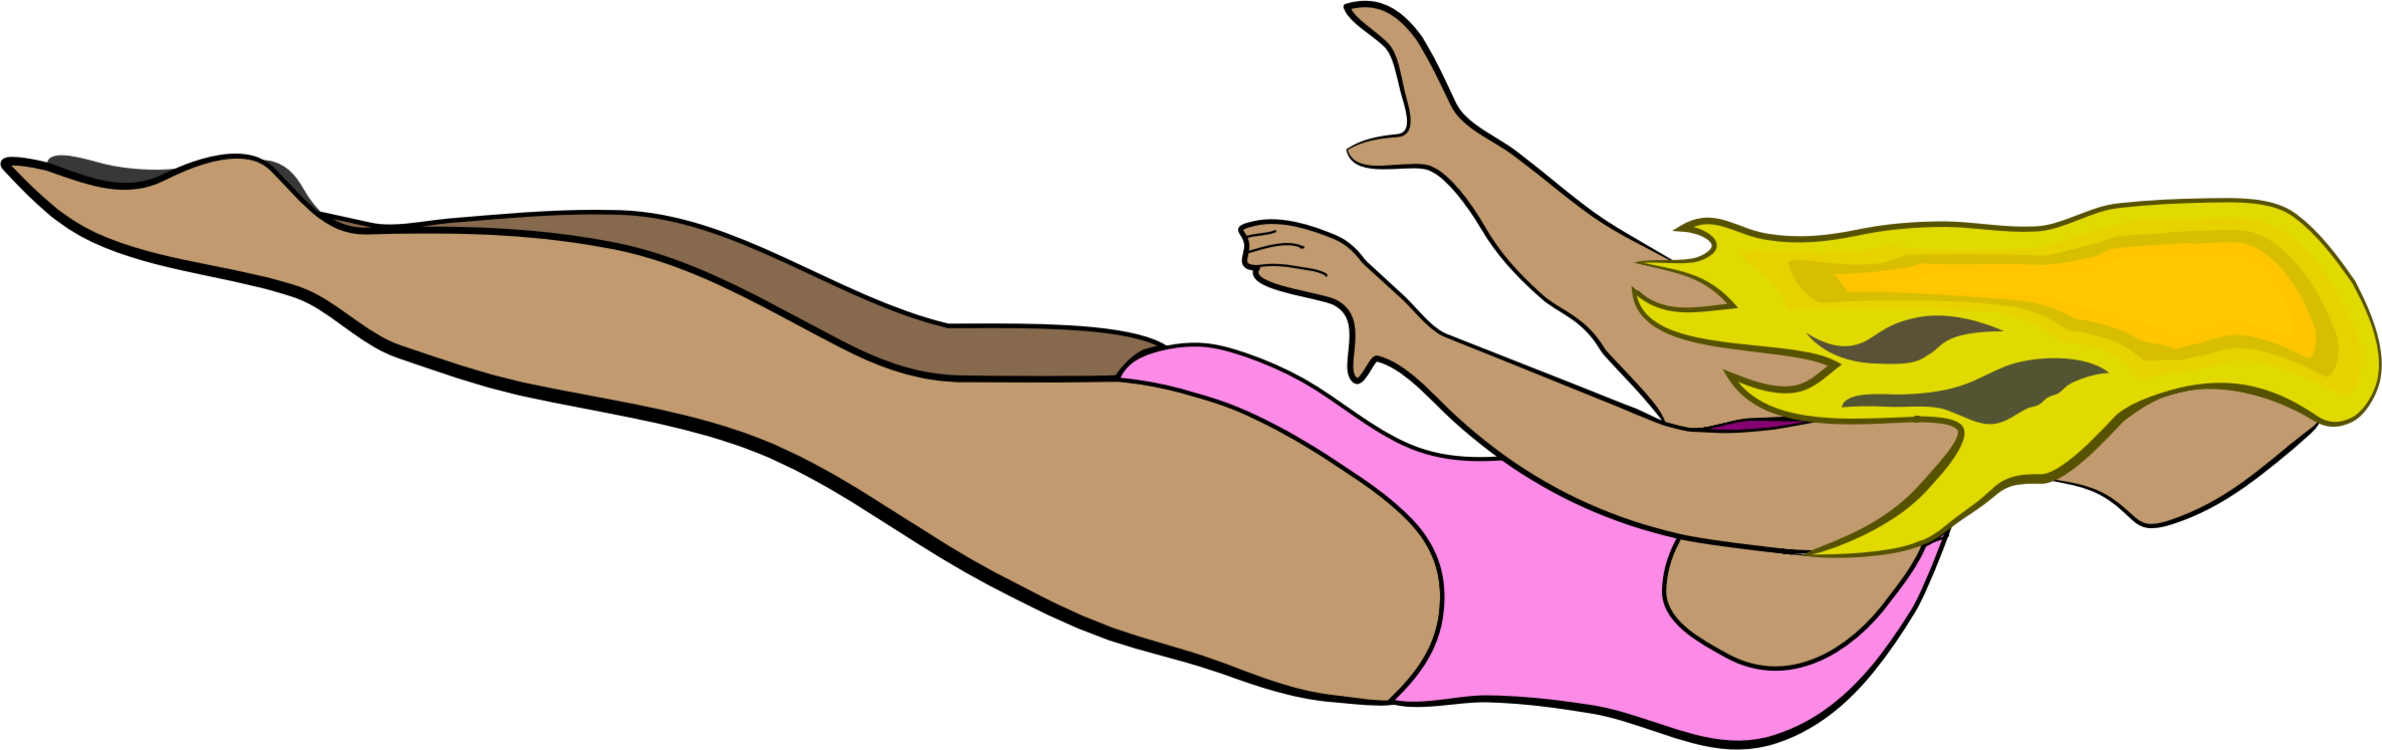 Women clipart scuba diving. Computer icons underwater thumb